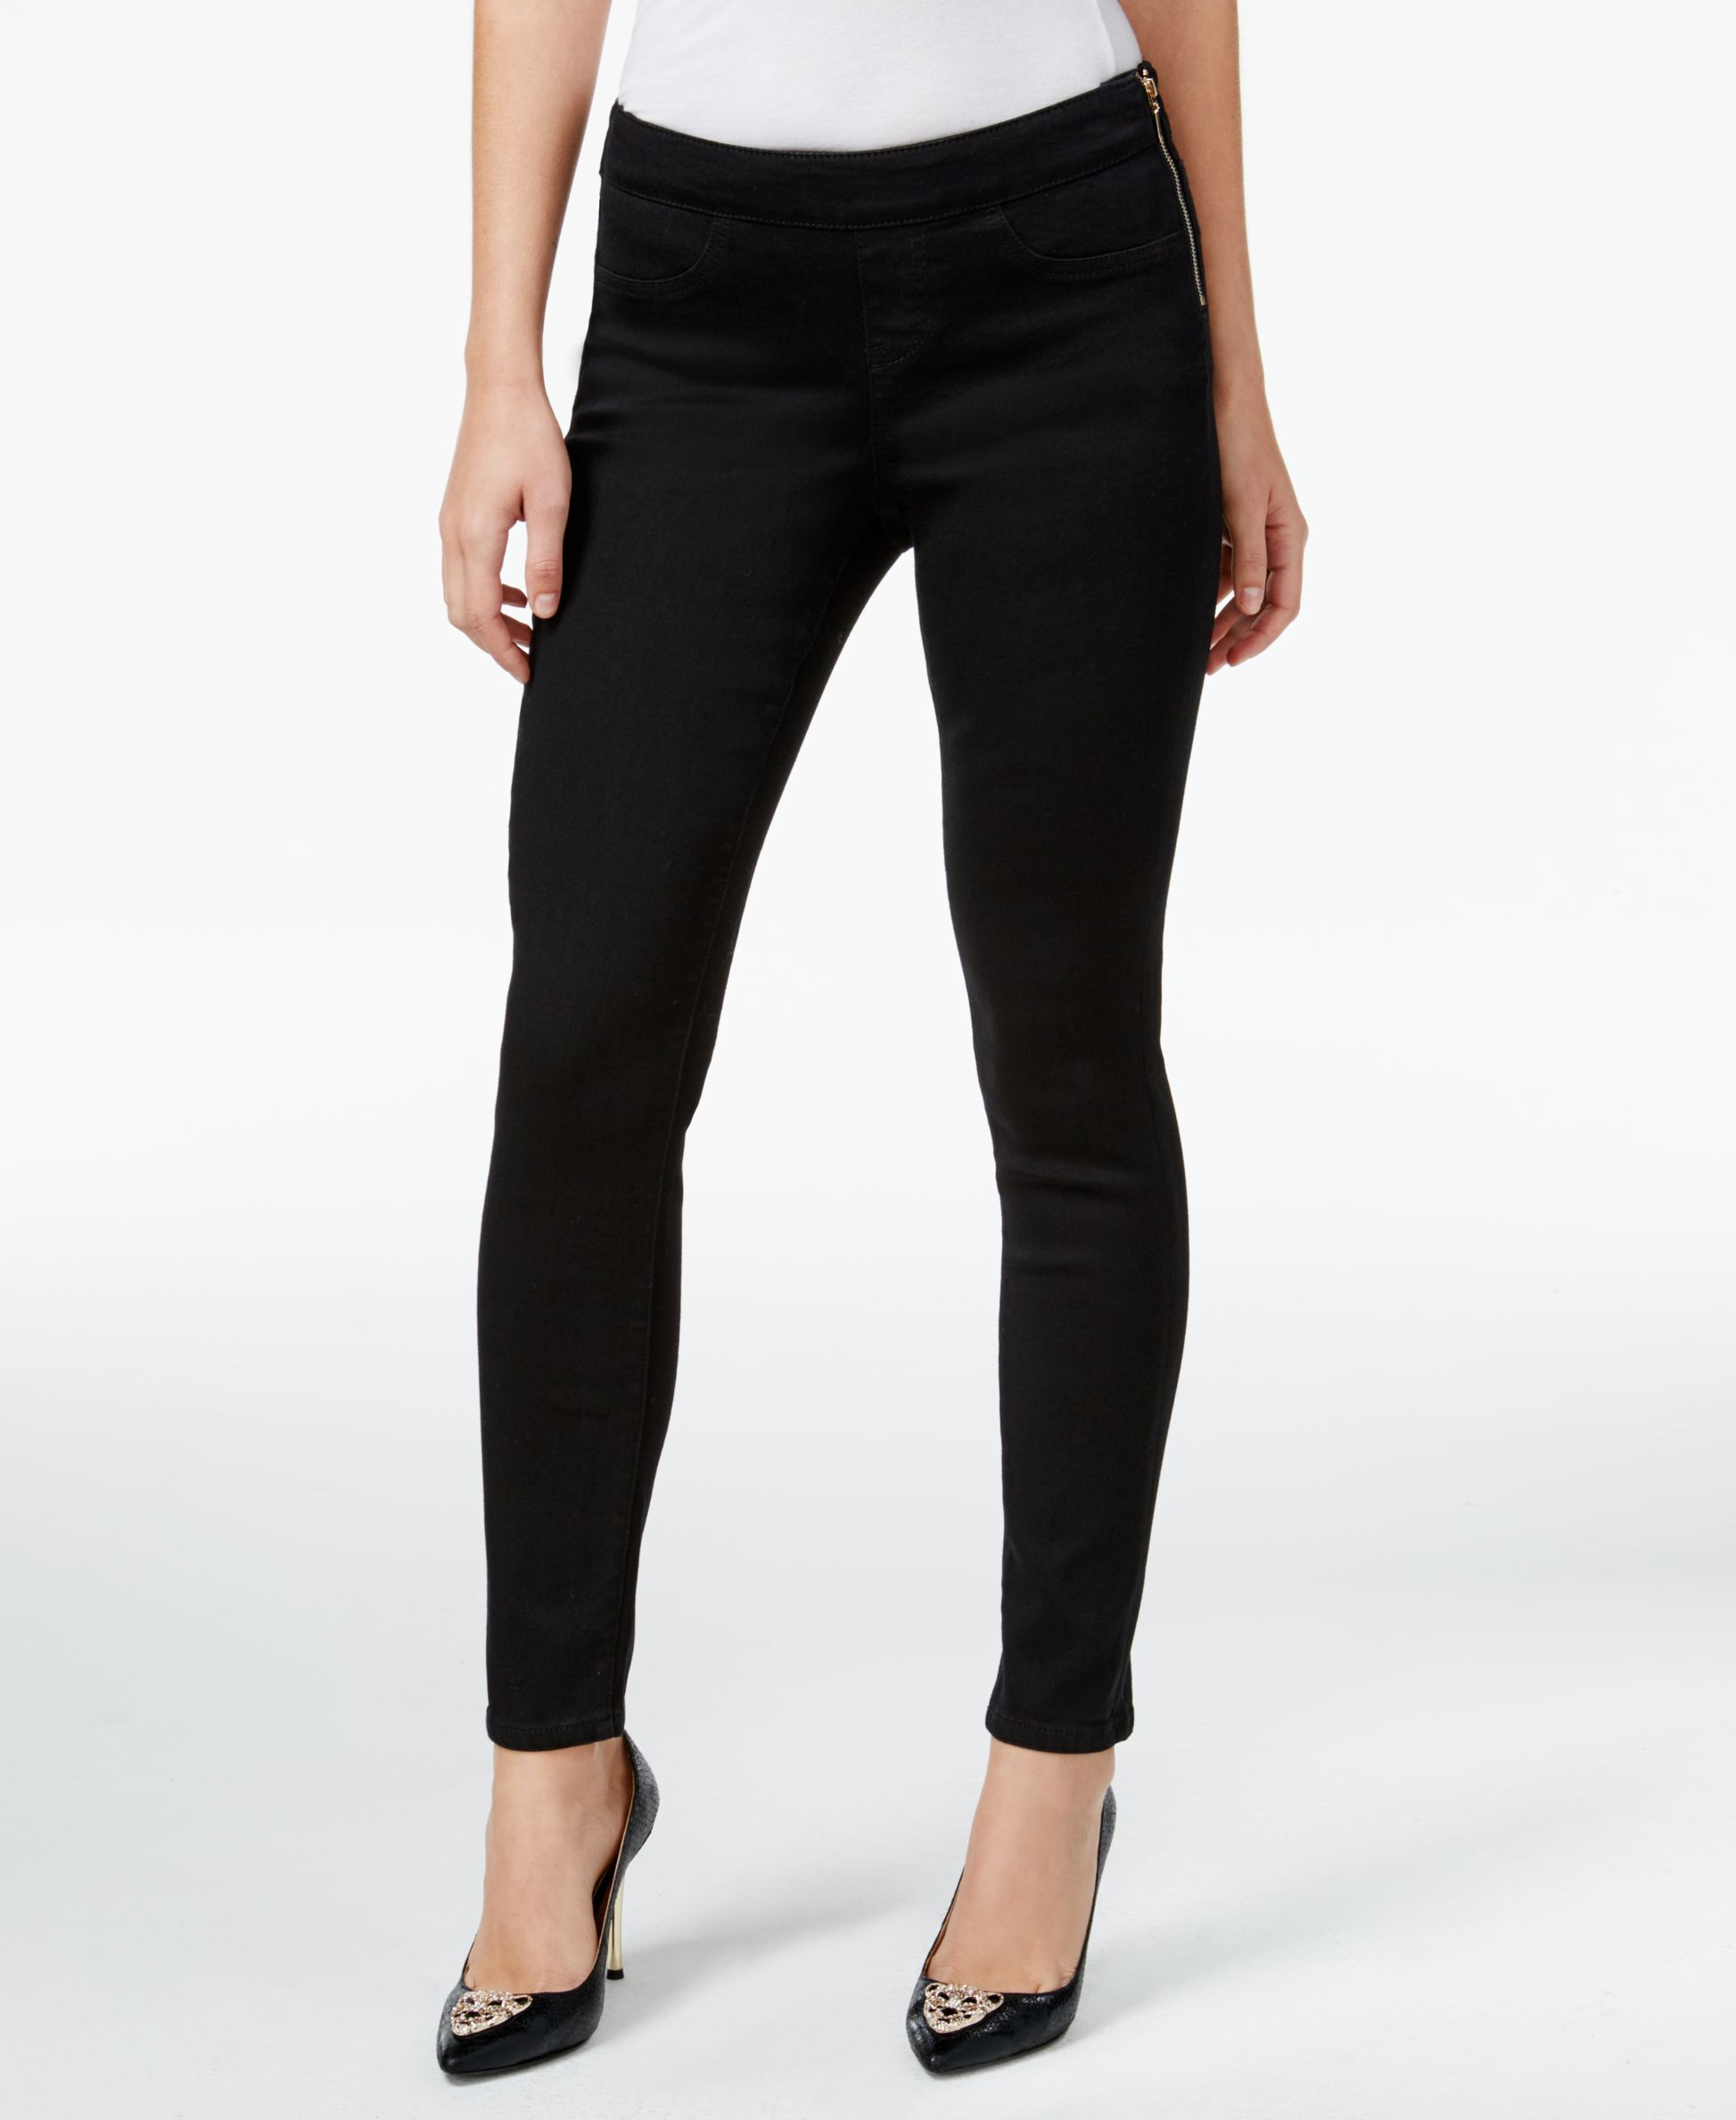 90b629a195fbd1 Thalia Sodi Black Wash Side-Zip Jeggings, Only at Macy's | Products ...